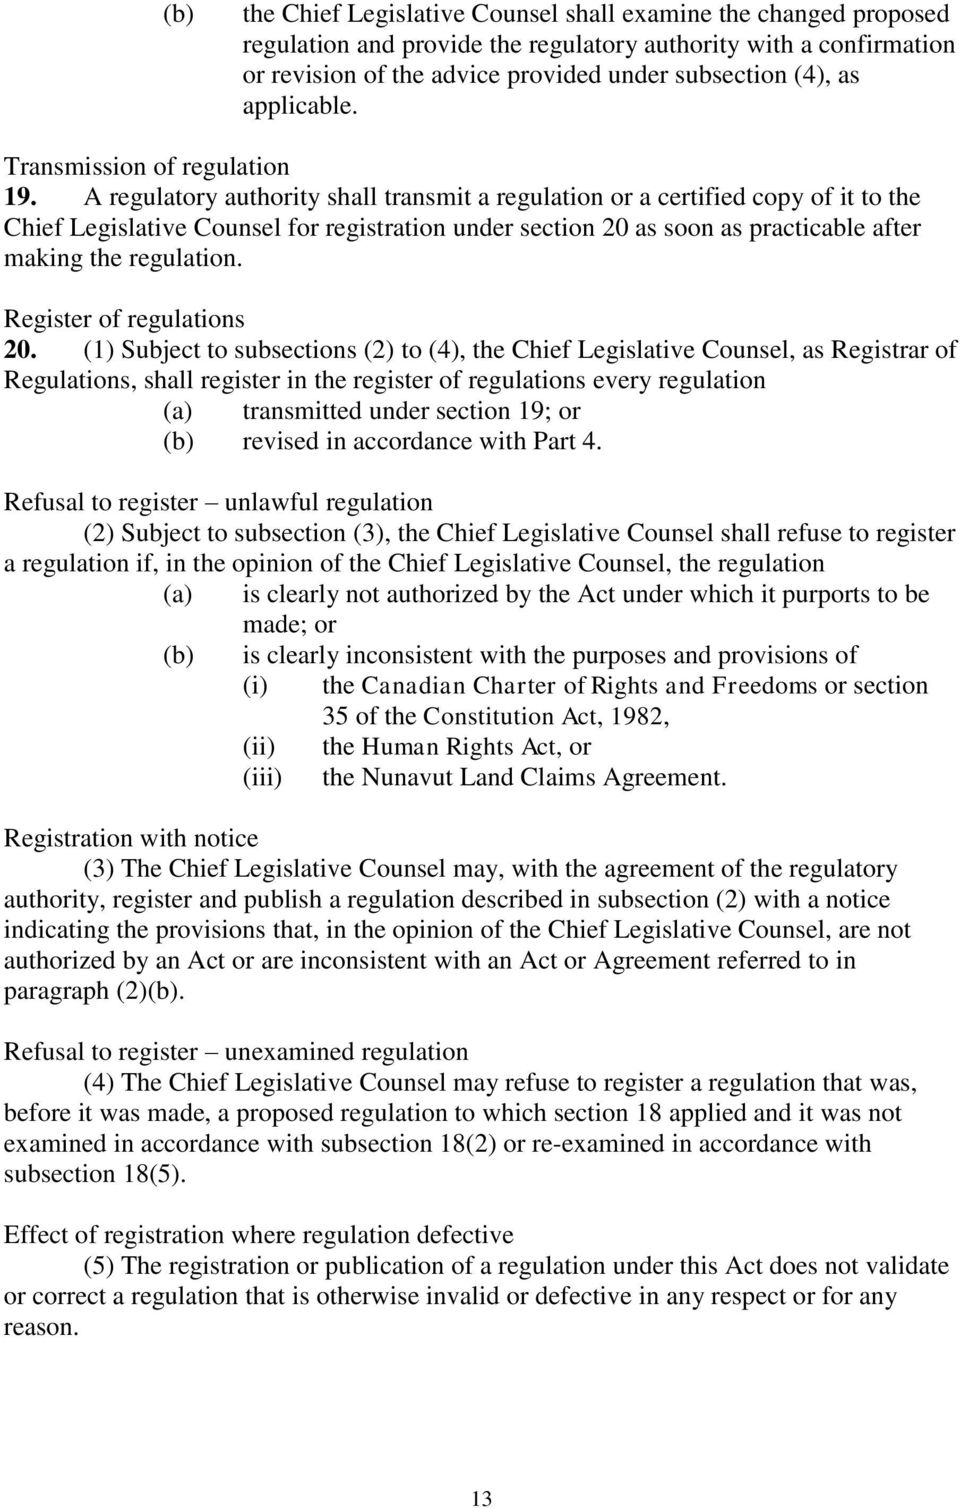 A regulatory authority shall transmit a regulation or a certified copy of it to the Chief Legislative Counsel for registration under section 20 as soon as practicable after making the regulation.